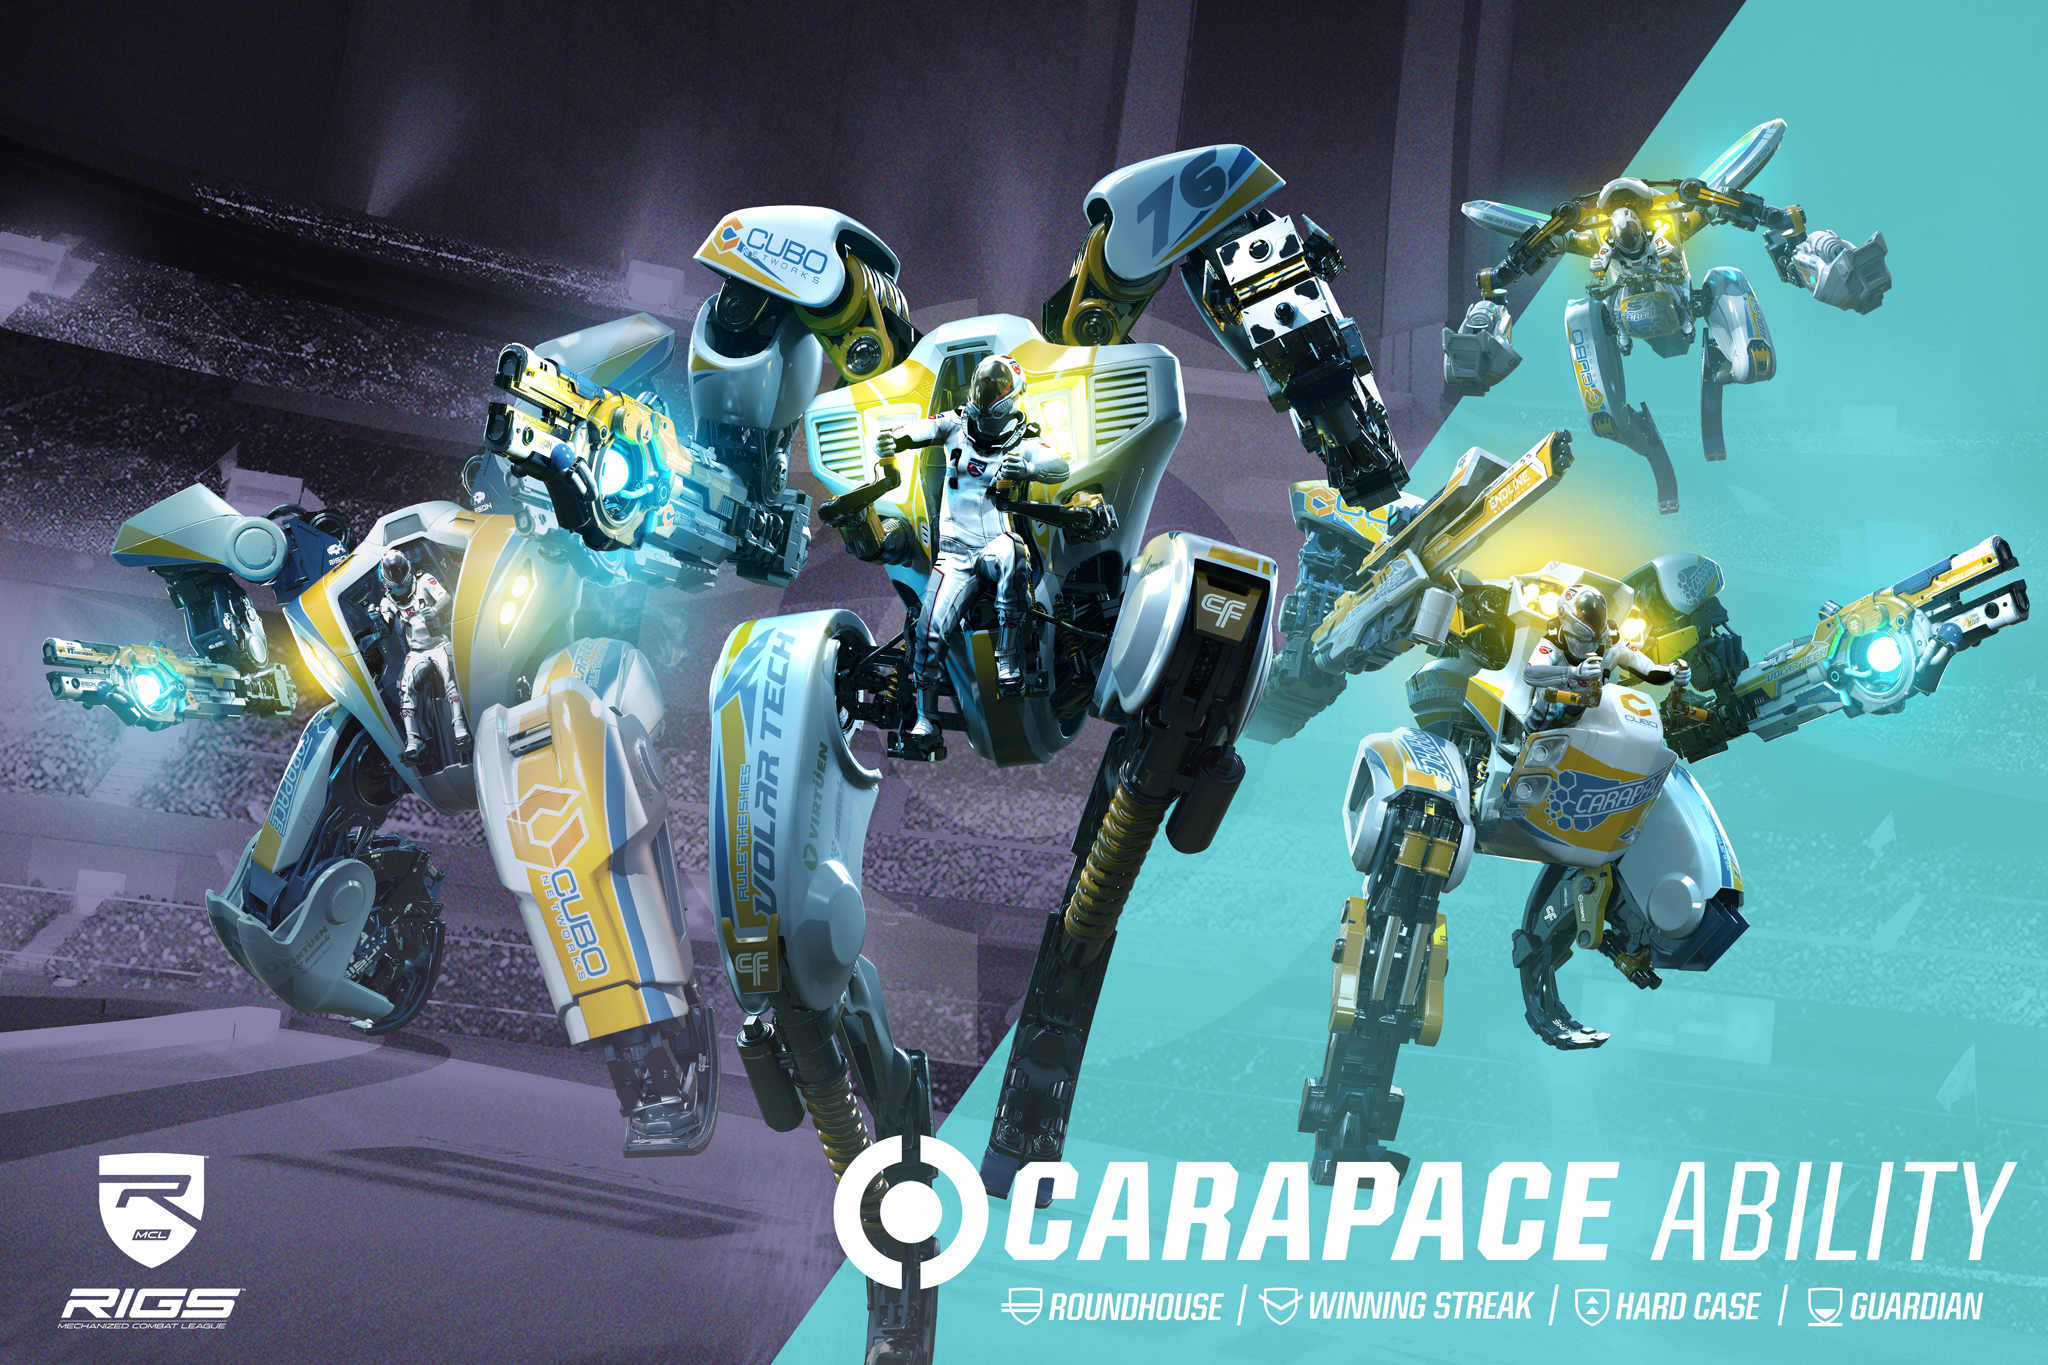 Ability_Group_Carapace_No_Weapon_Details_small.jpg